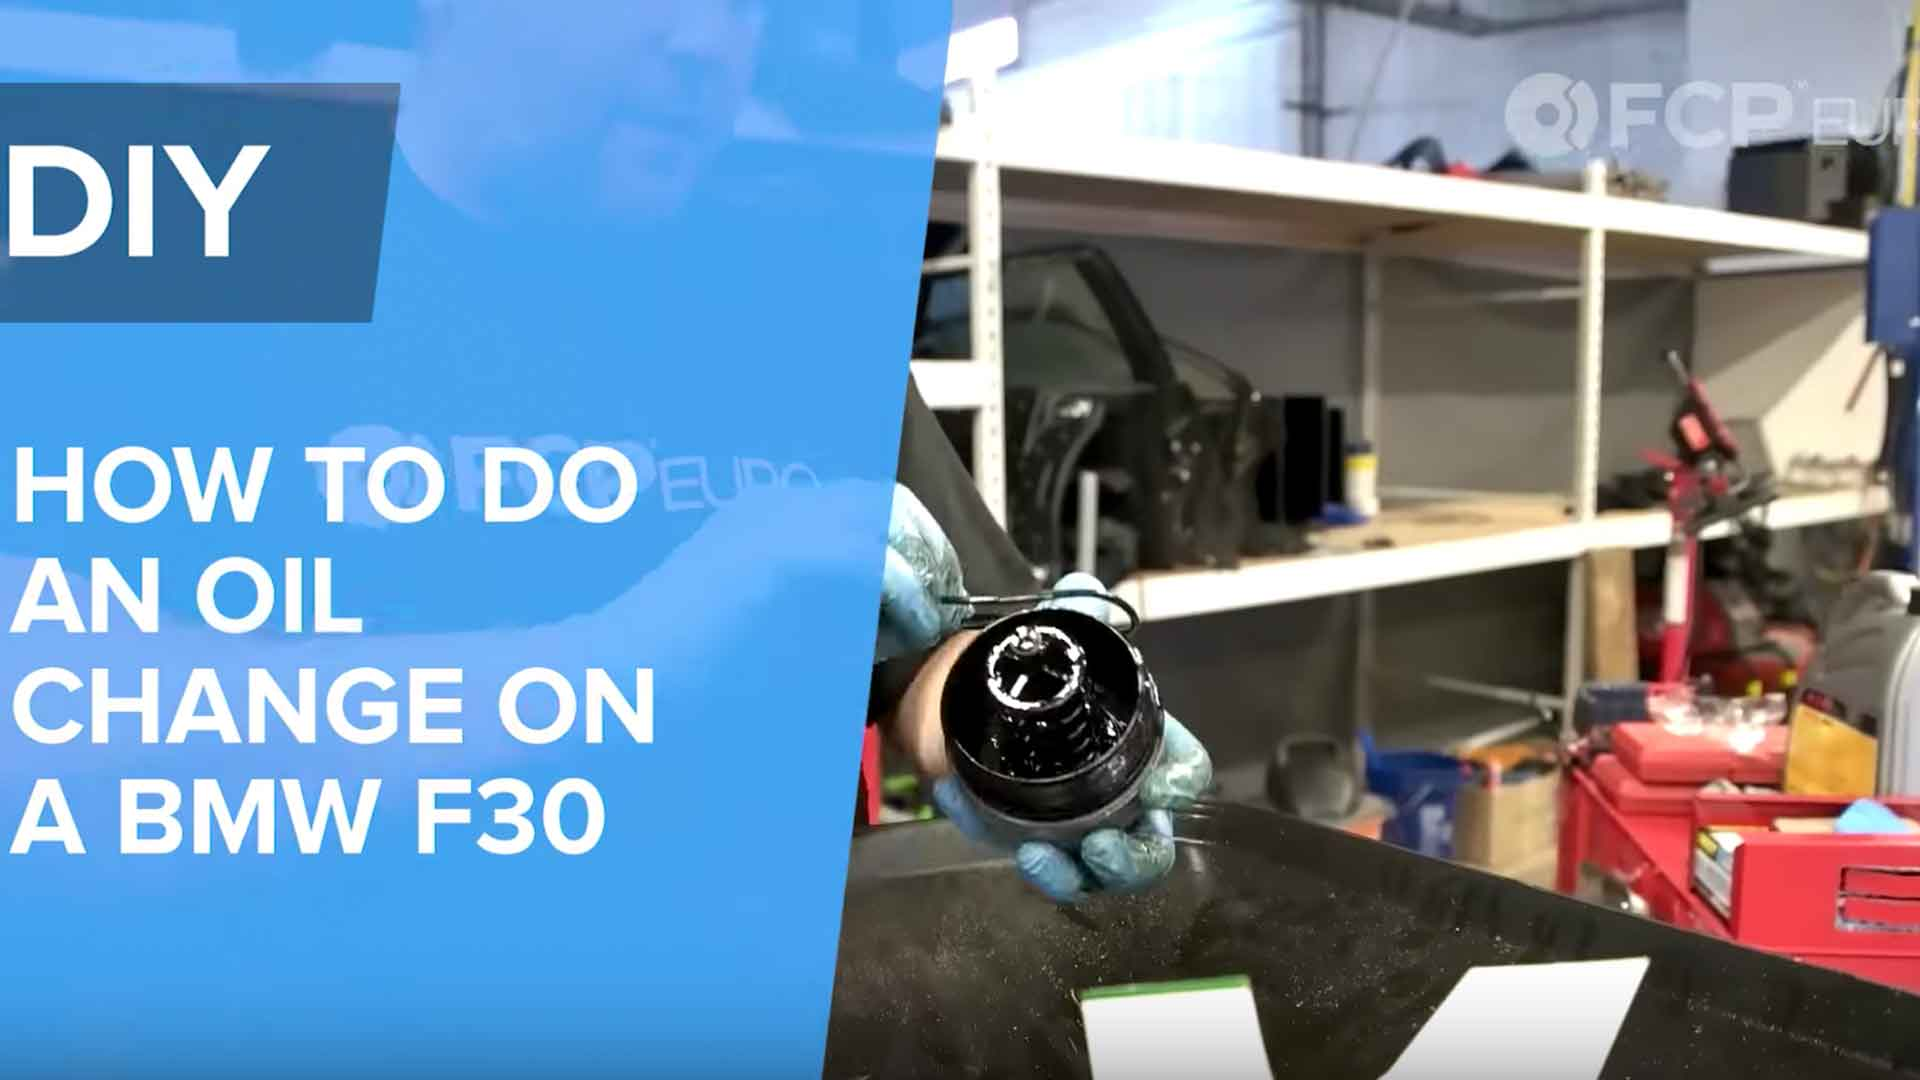 How To Change The Oil On A BMW F30